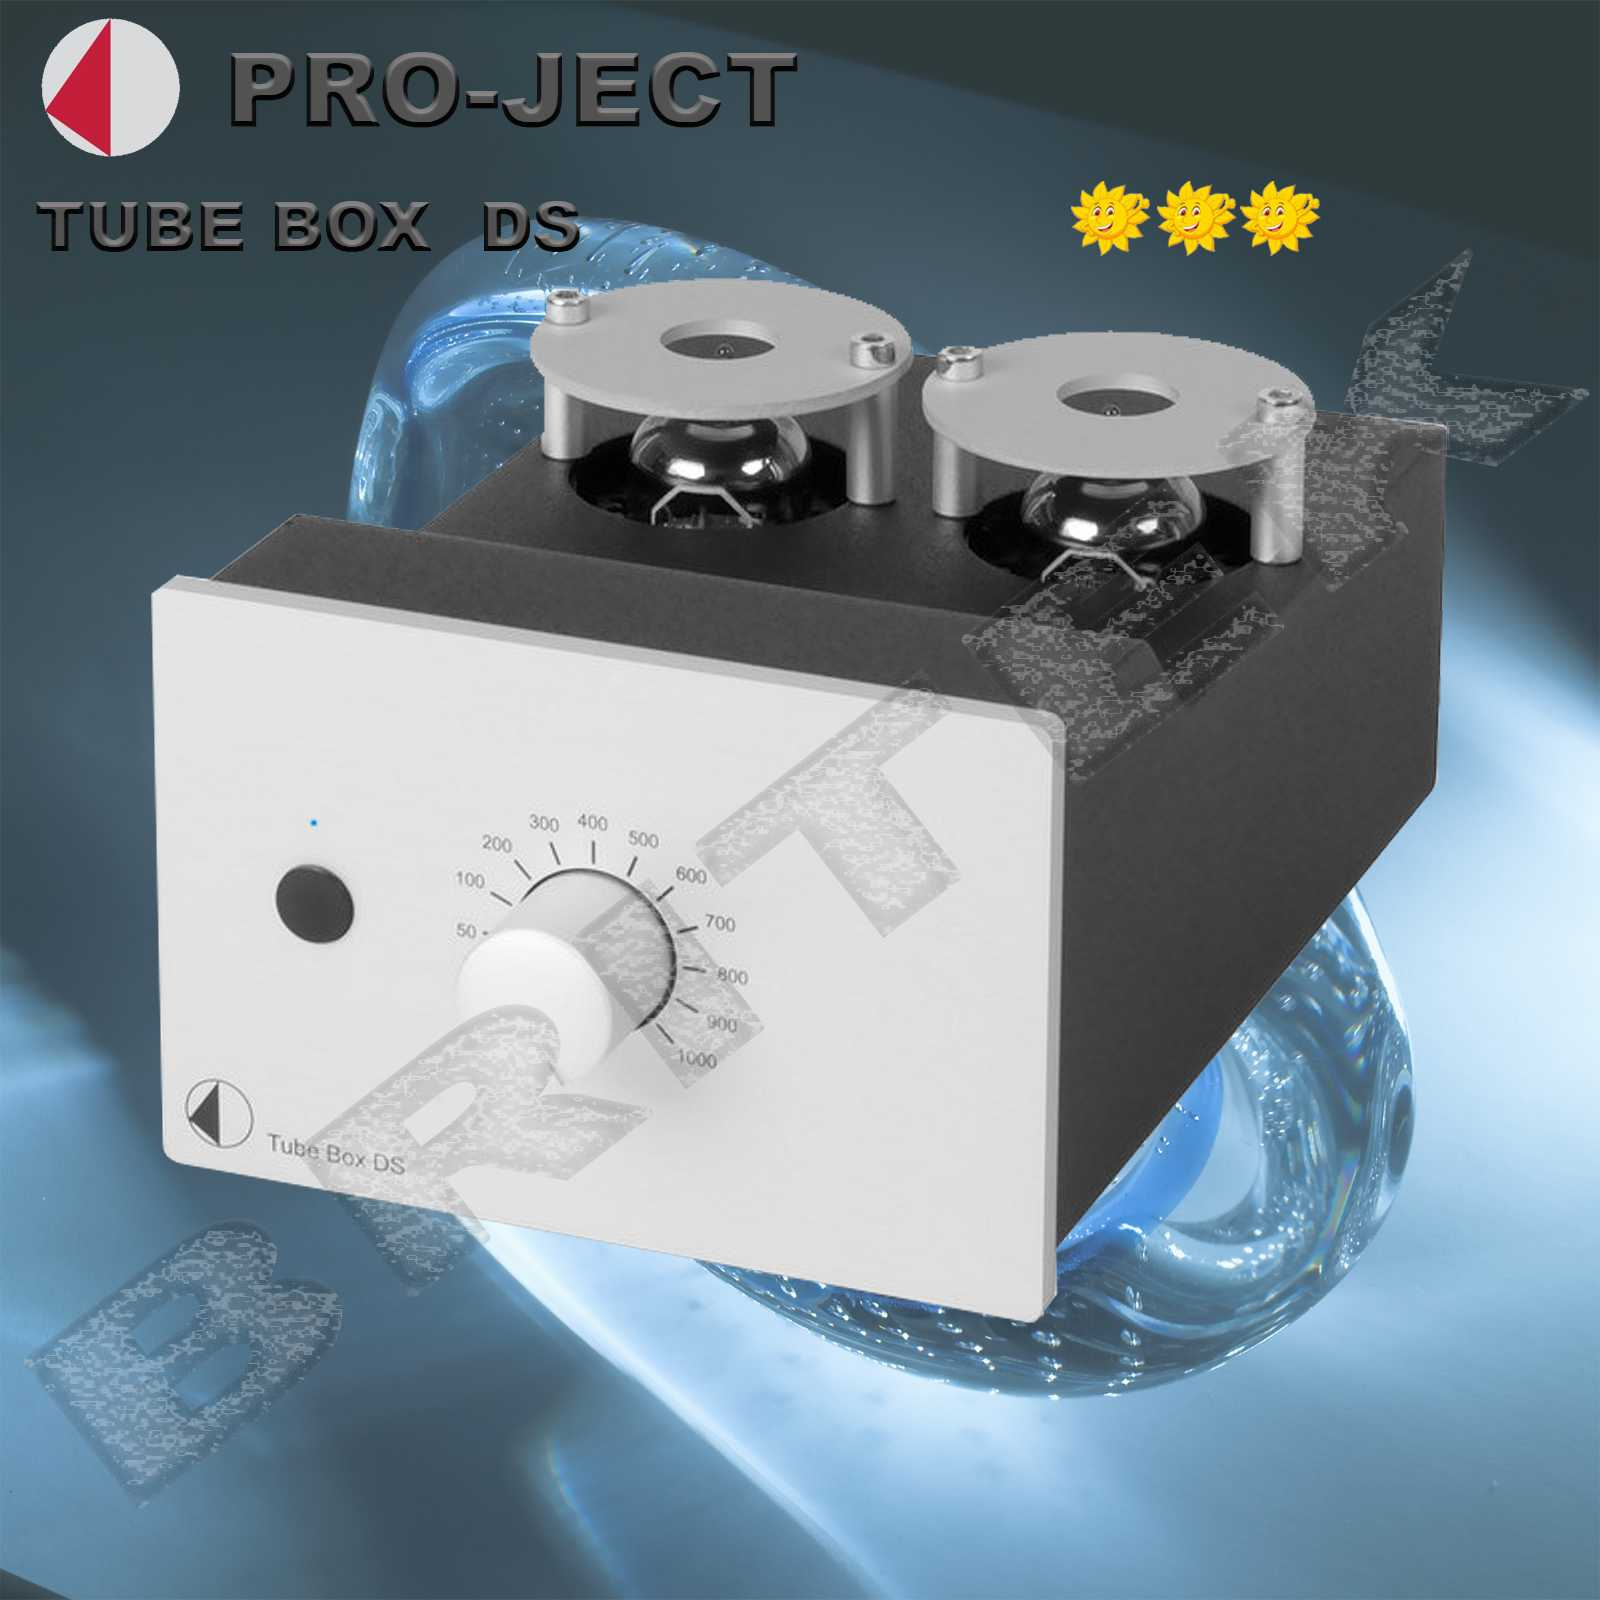 PRO-JECT TUBE BOX-DS